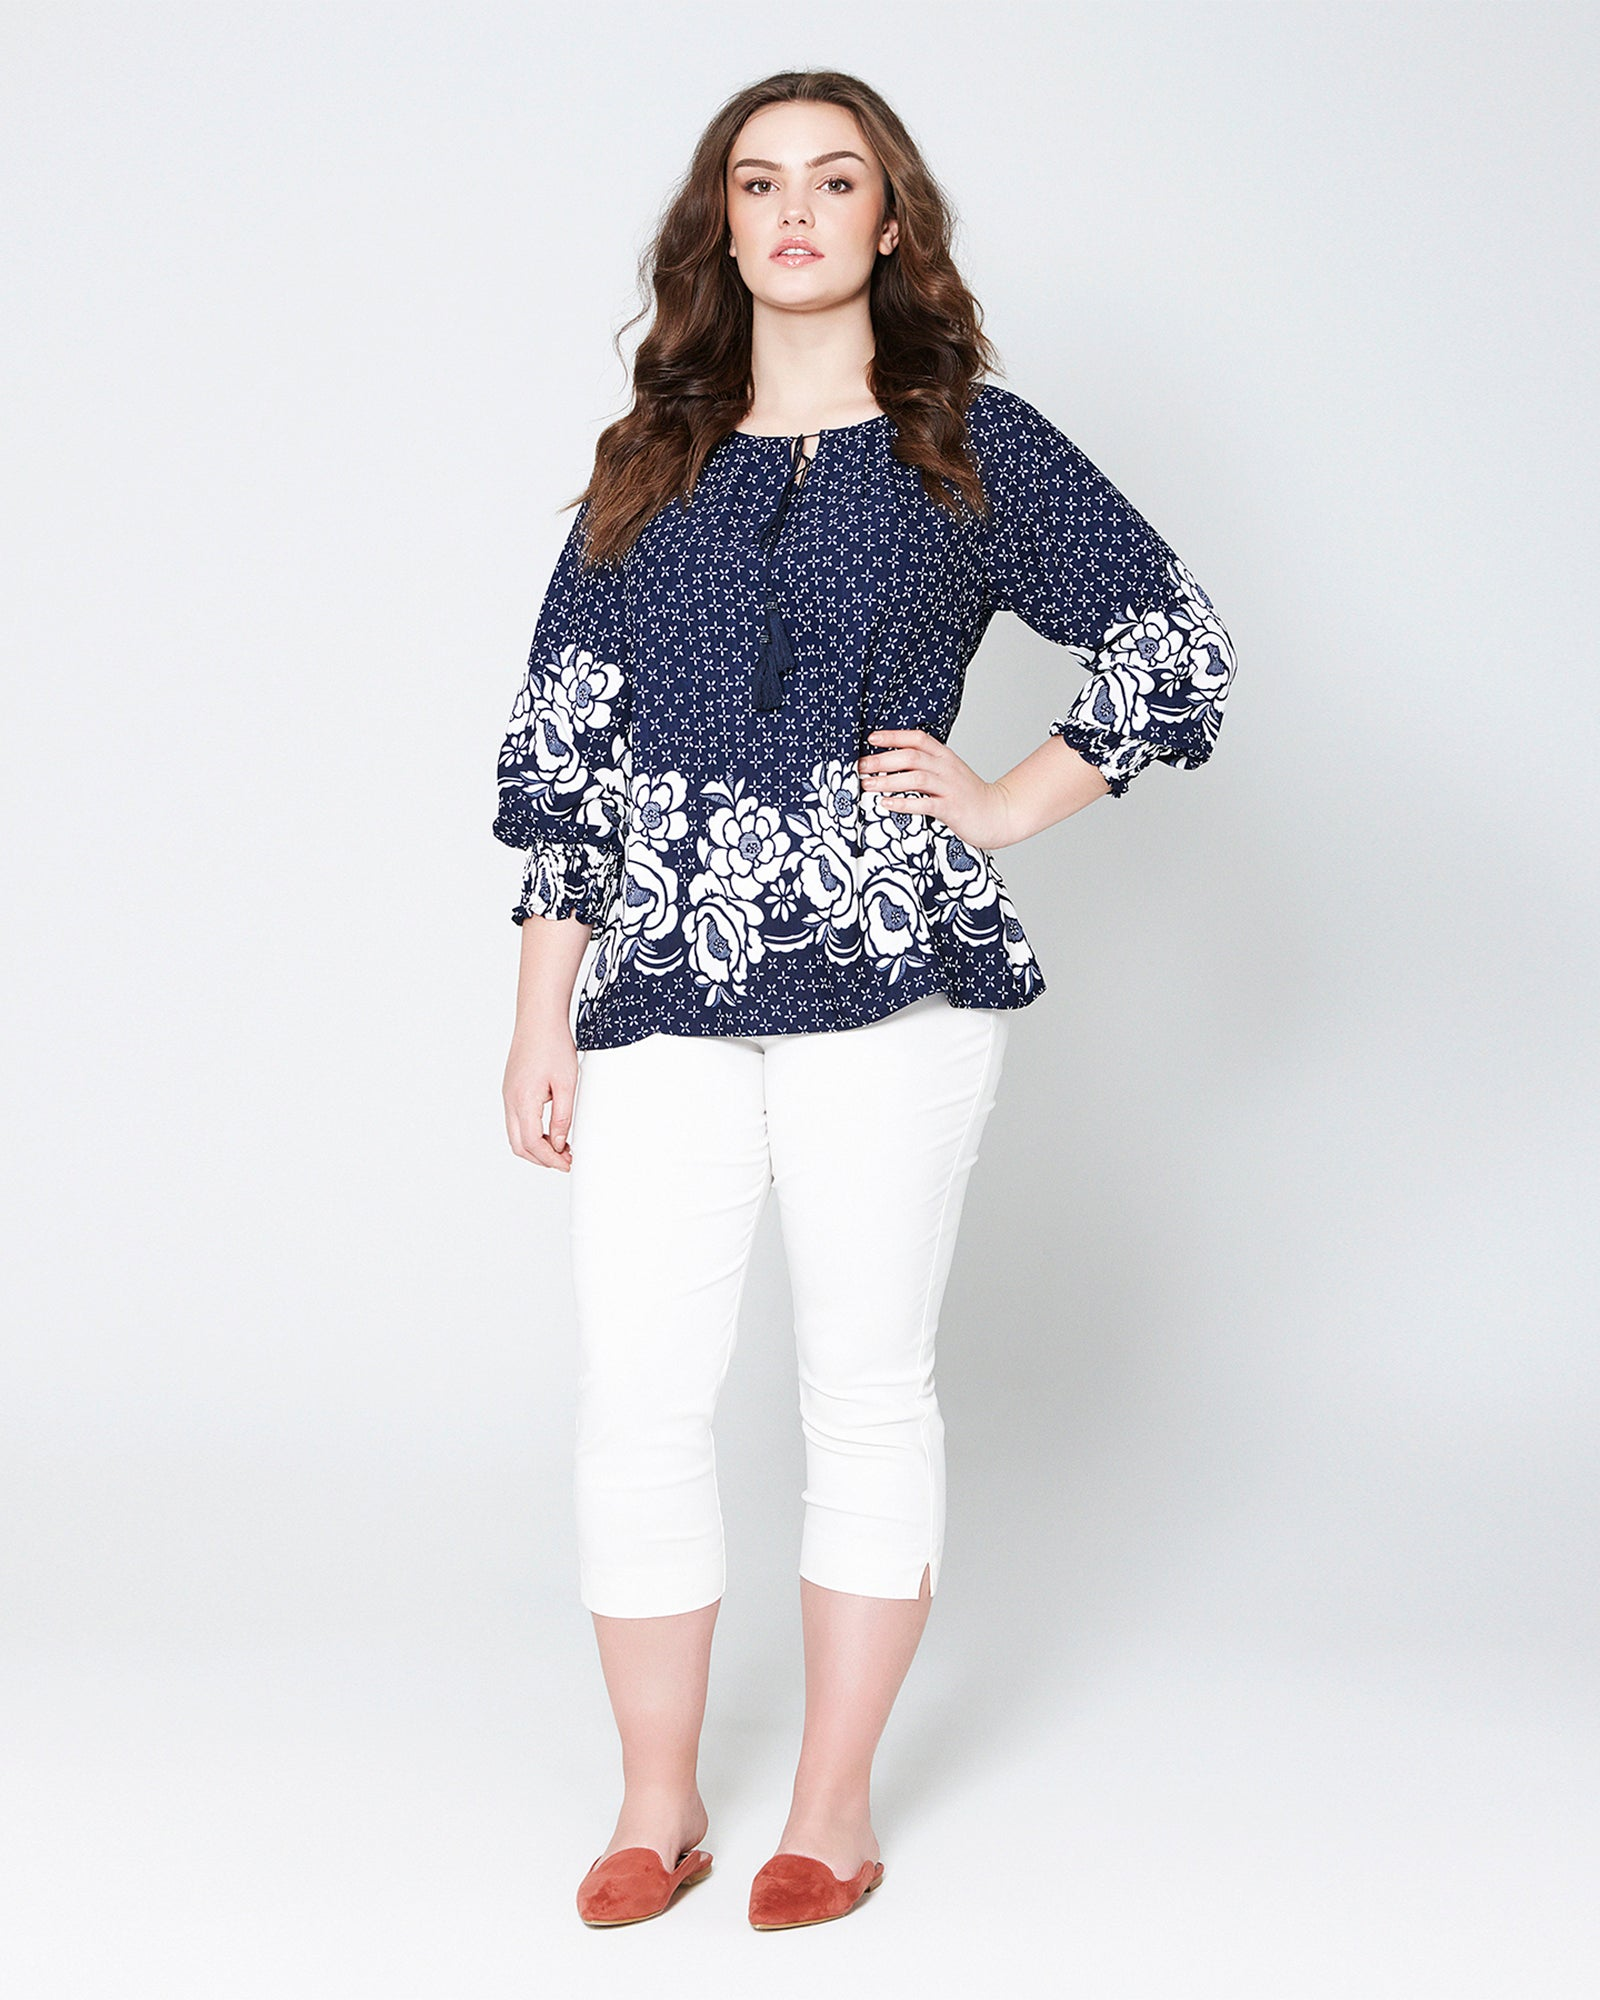 cd1359e348 Printed Peasant Top by MS. READ Malaysia (plus size clothing ...